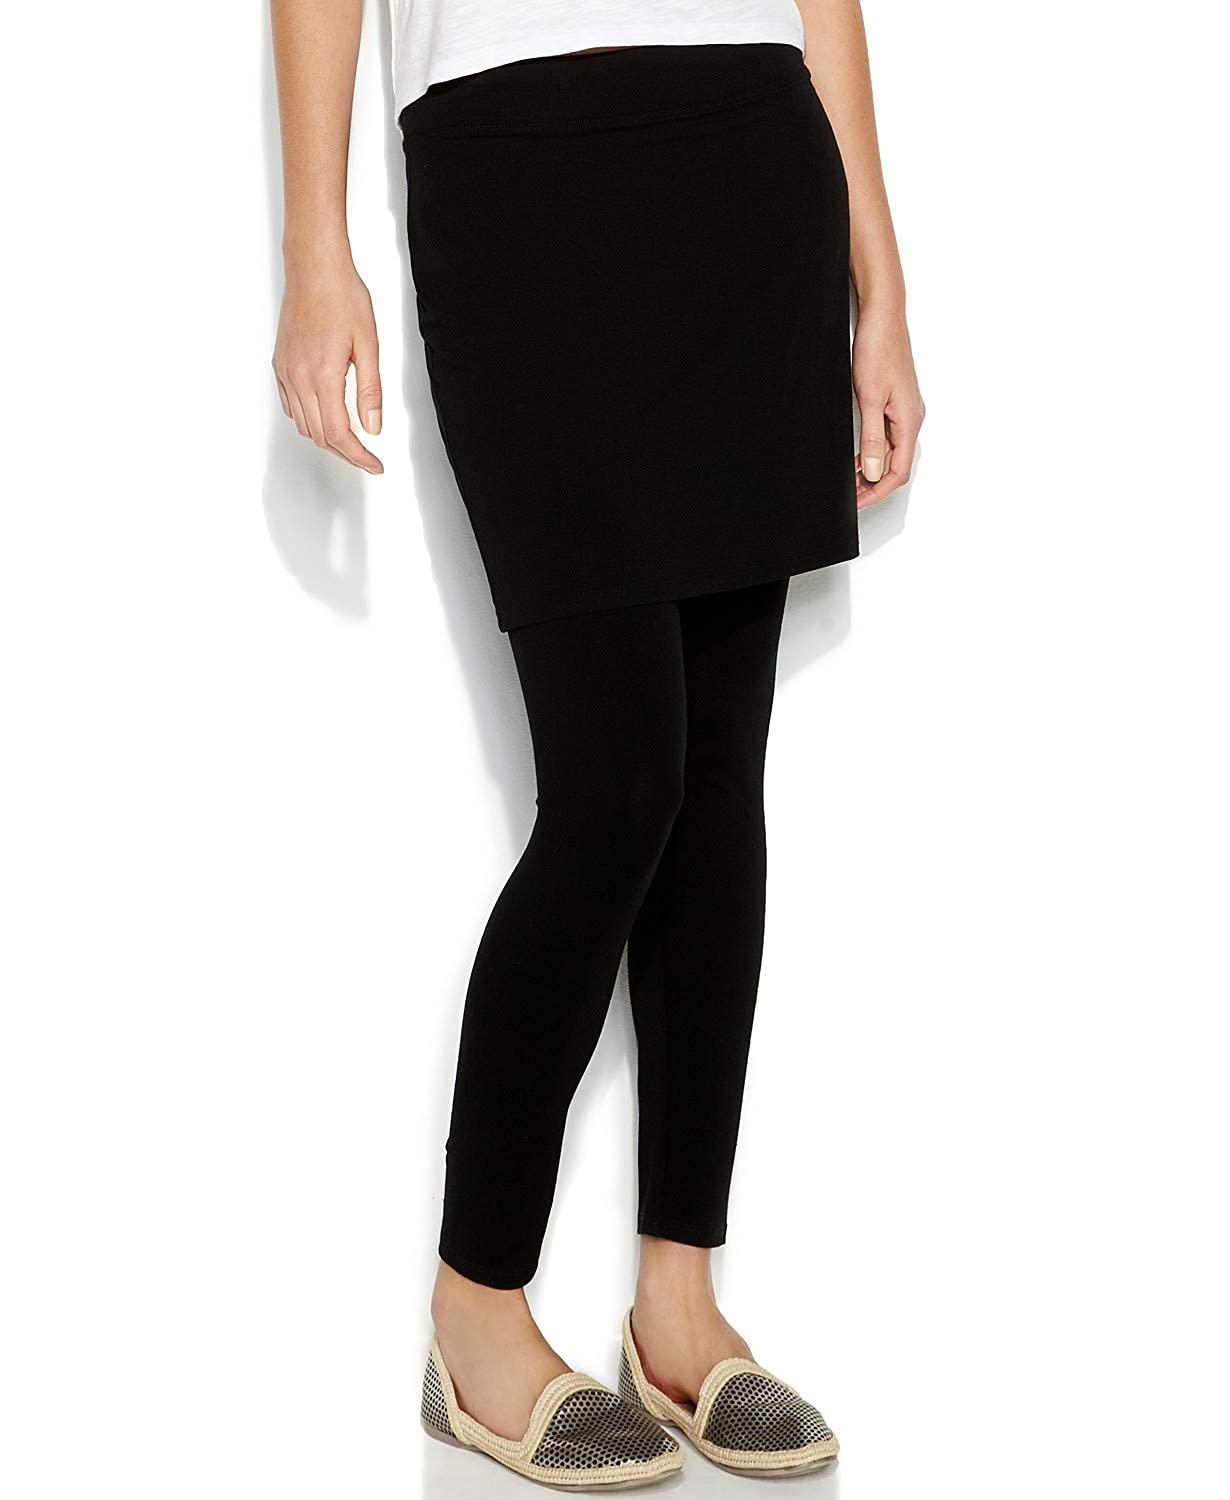 6c8f5a7b71656 Eileen Fisher Skirted Leggings: Amazon.ca: Clothing & Accessories